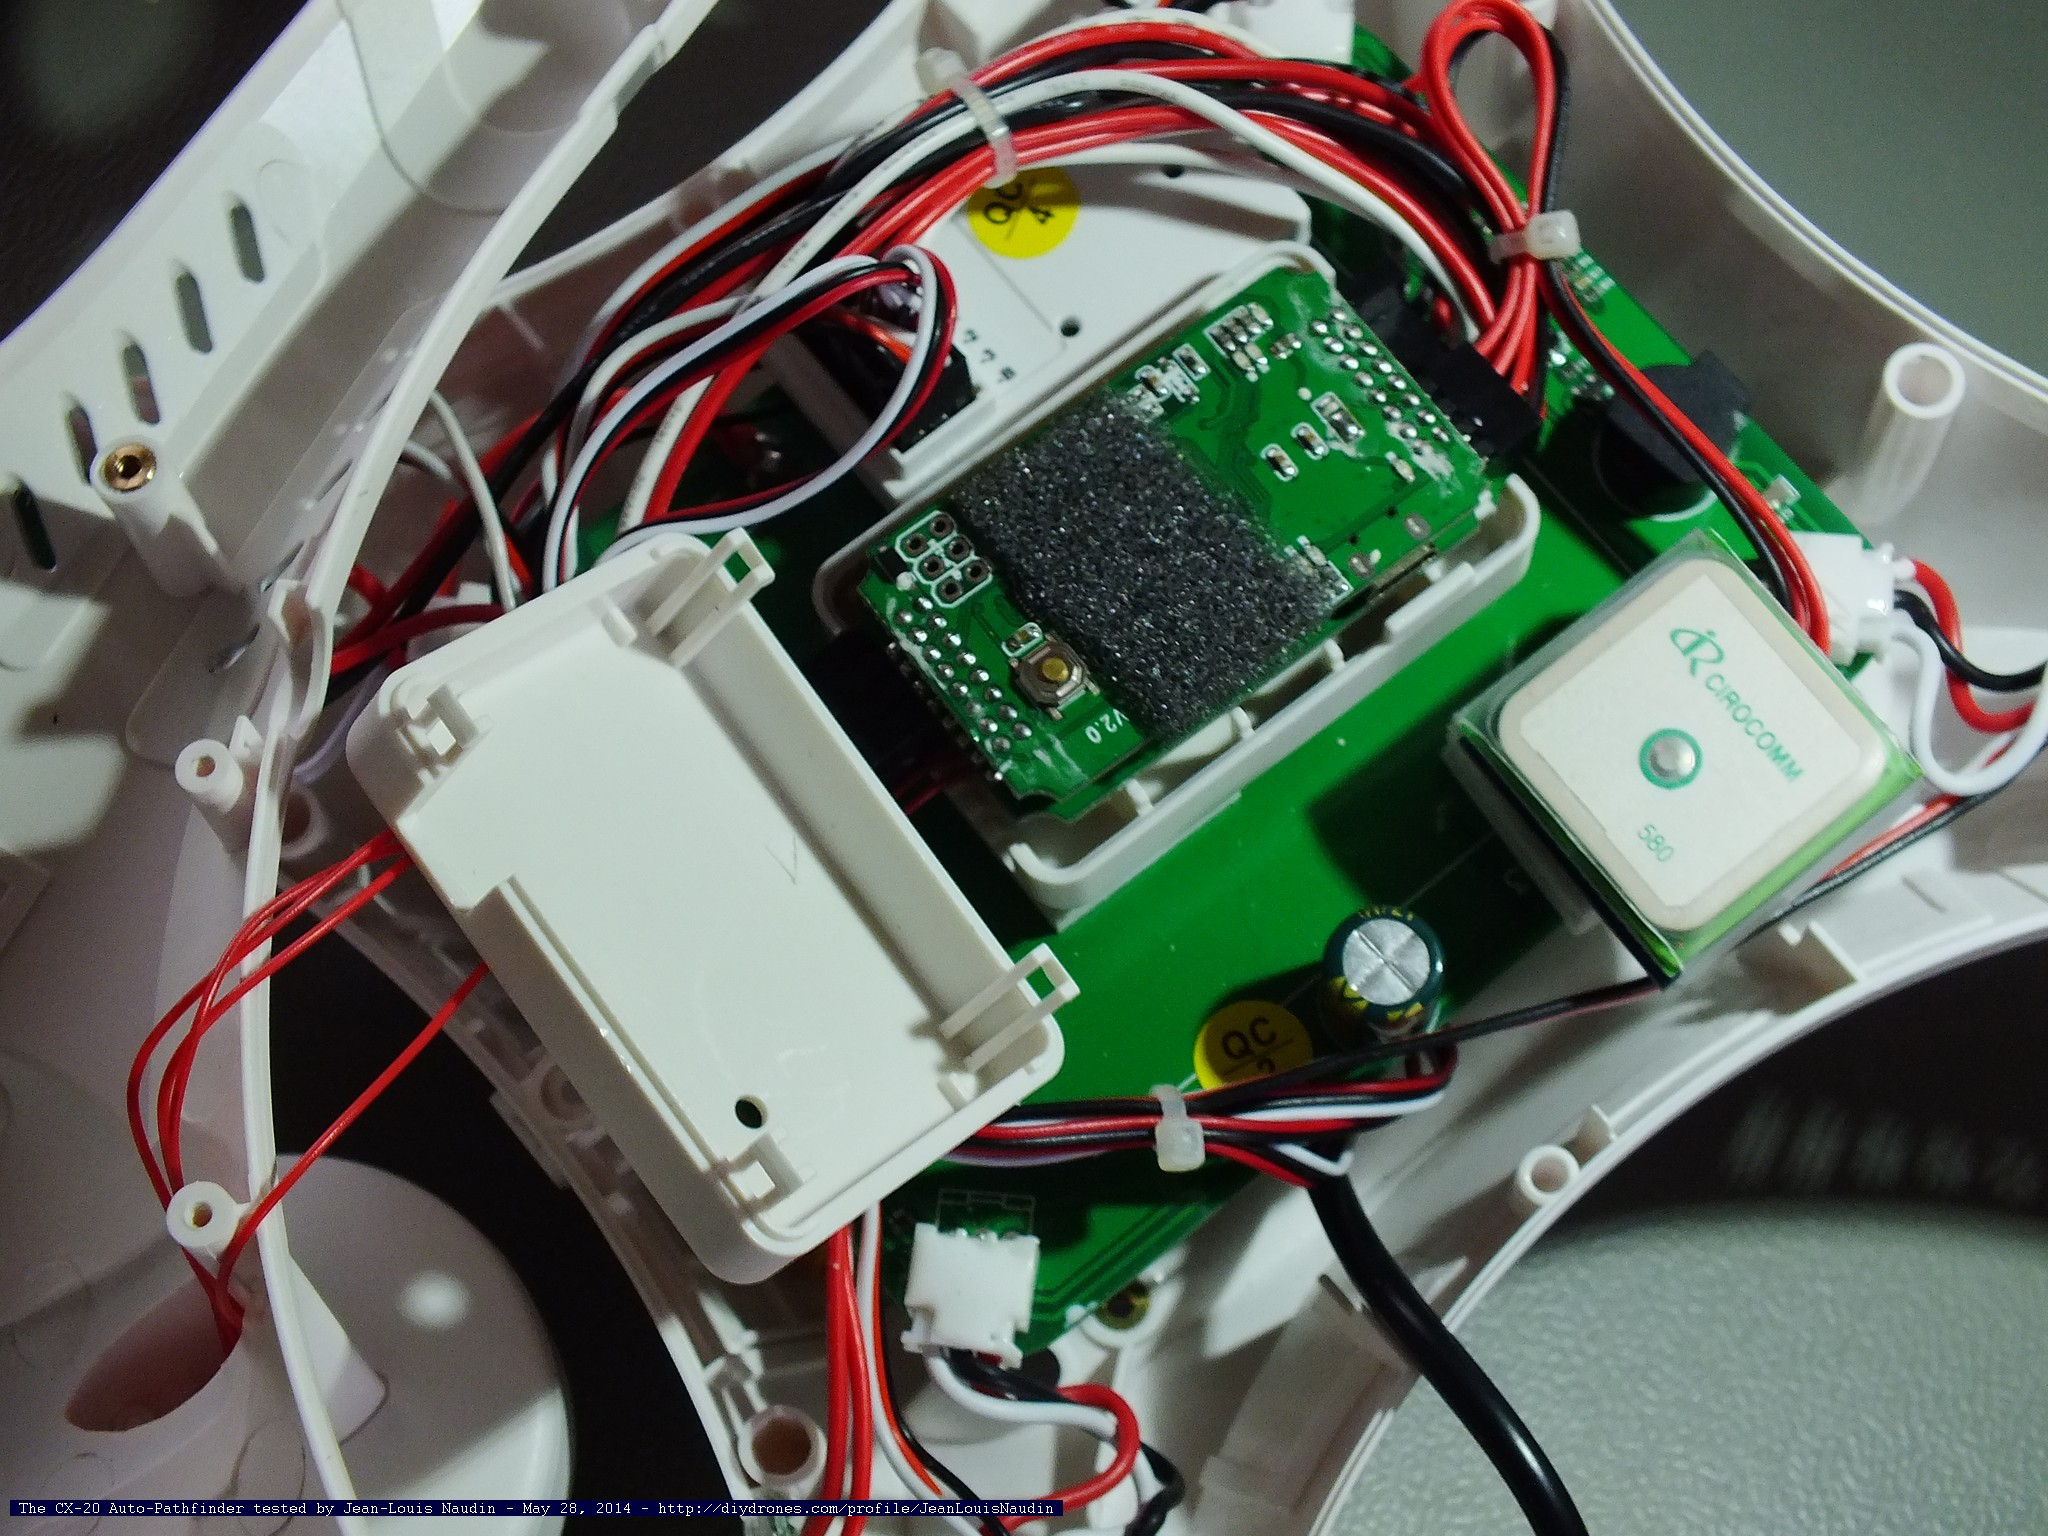 cx20inside02 inside the cheerson cx 20 auto pathfinder (or called the quanum cheerson cx20 wiring diagram at bayanpartner.co